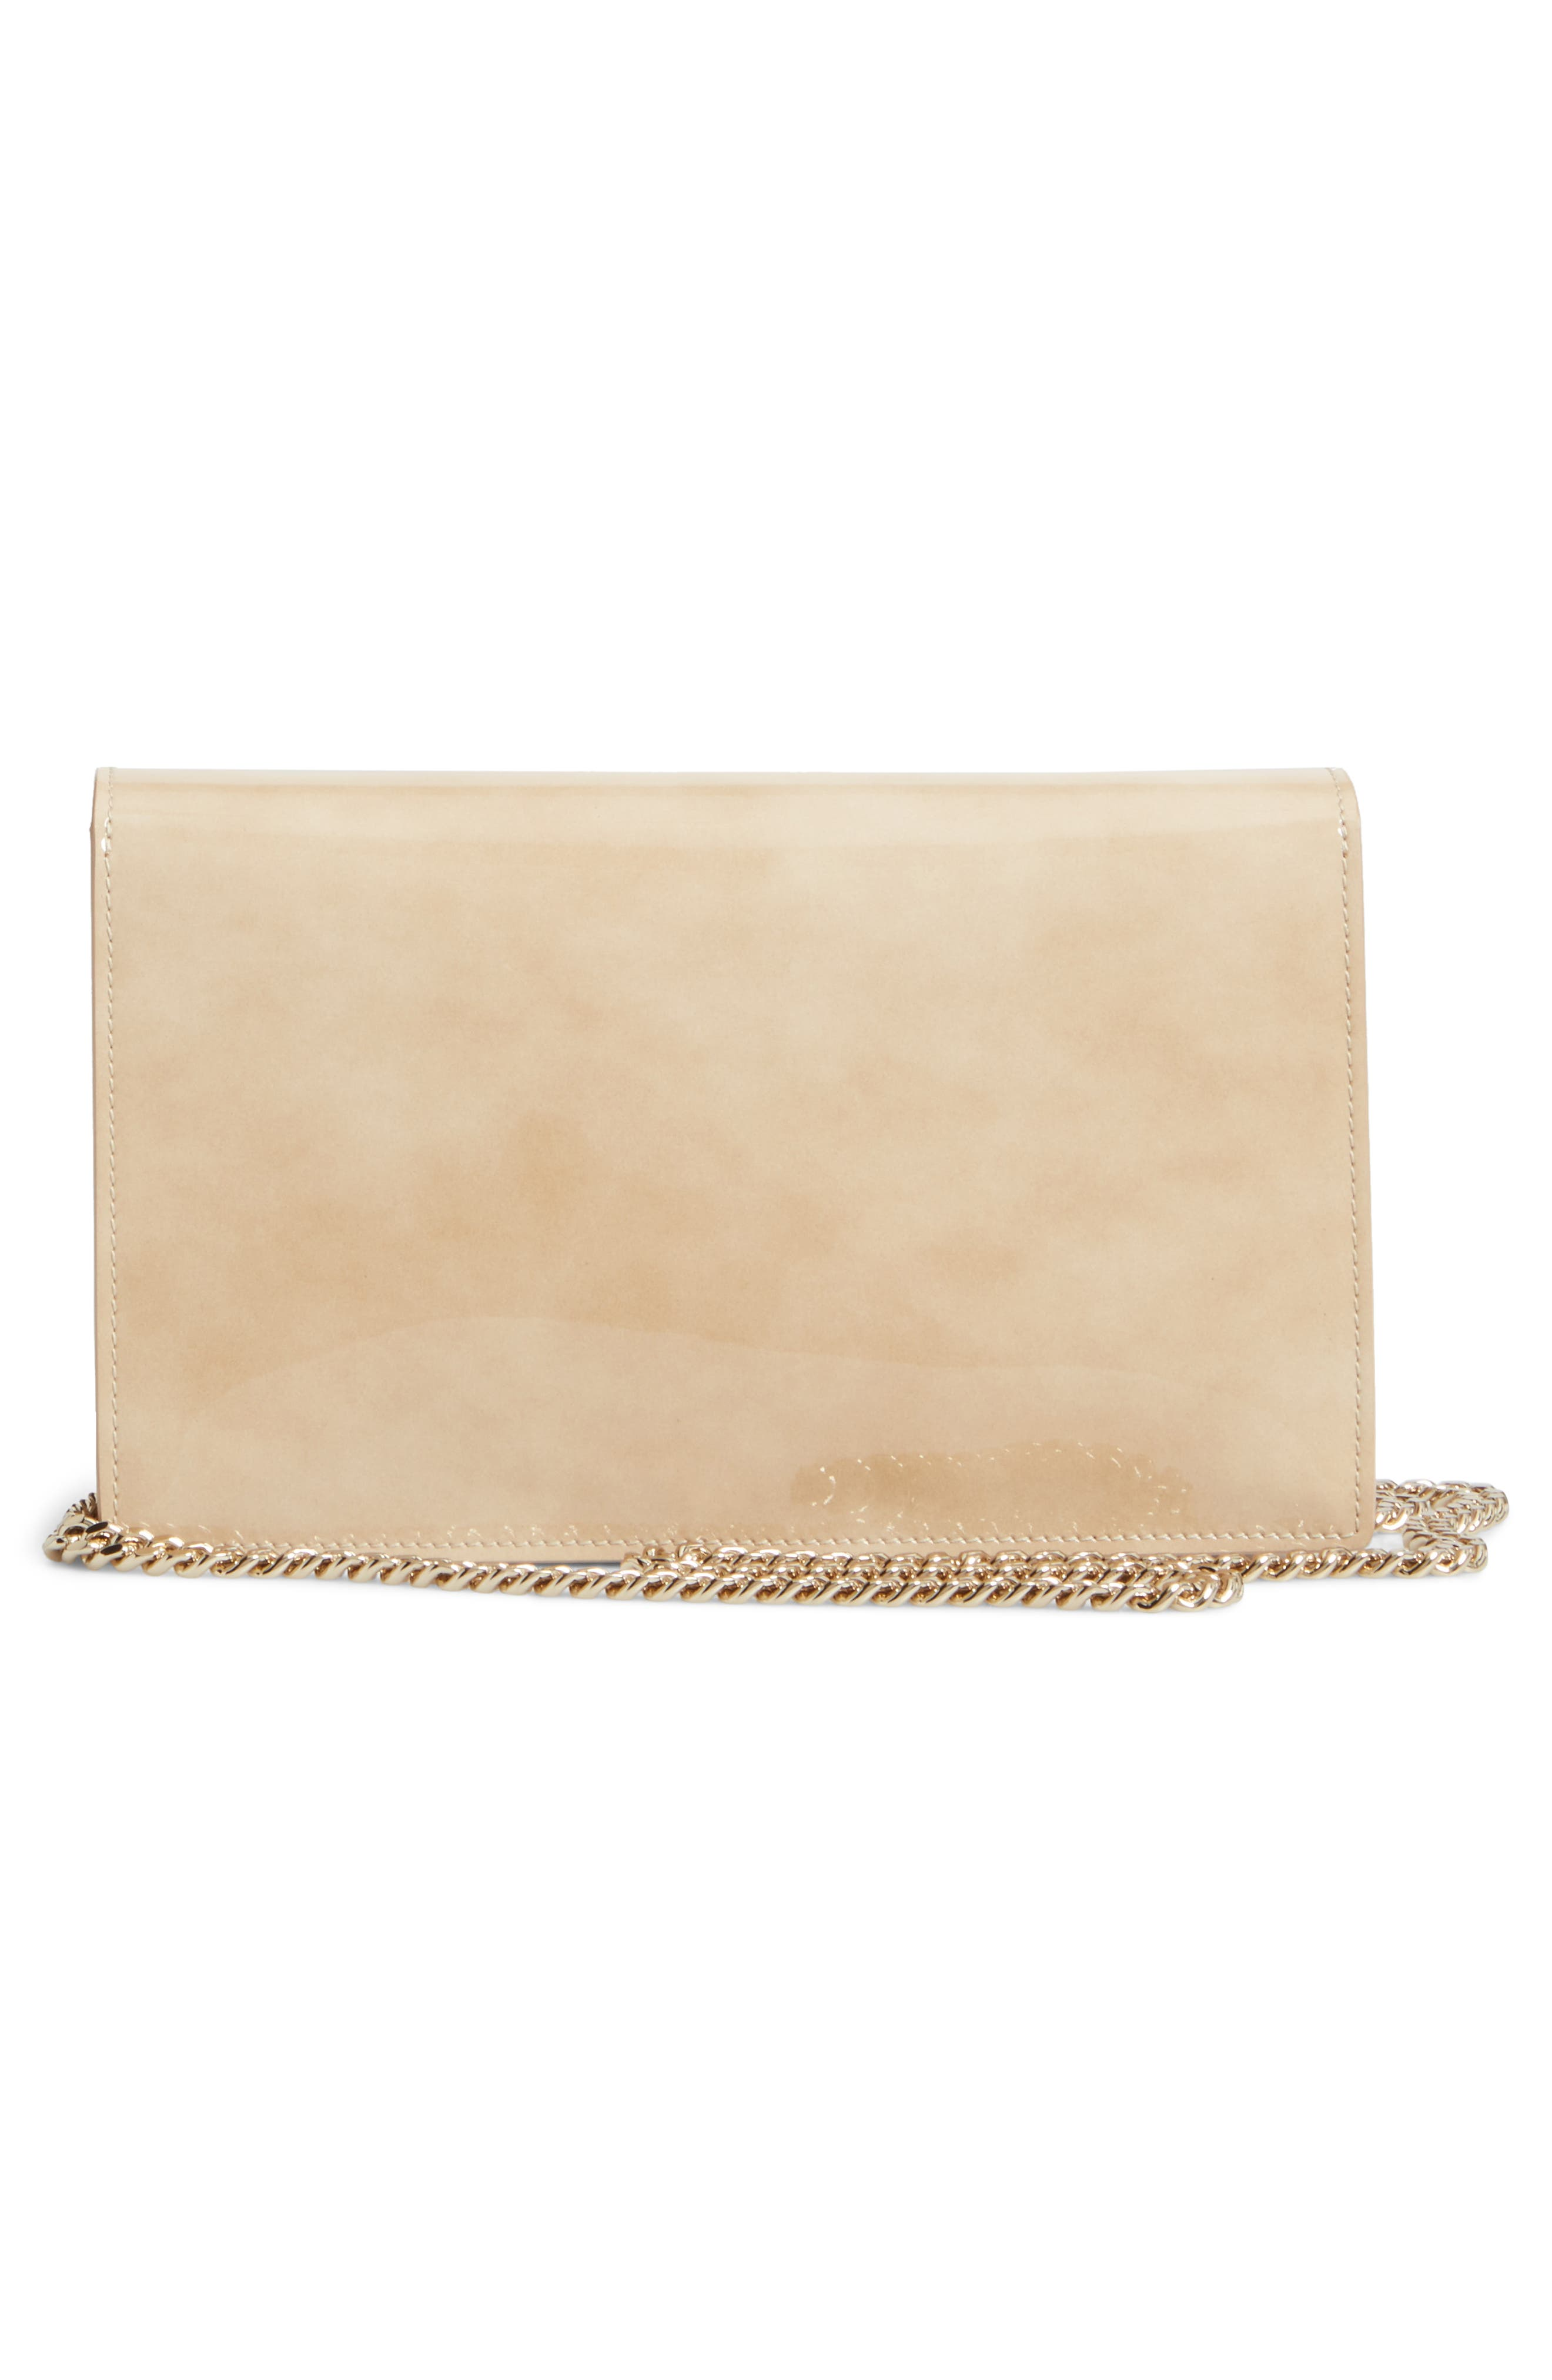 Alternate Image 3  - Jimmy Choo Florence Patent Leather & Suede Clutch